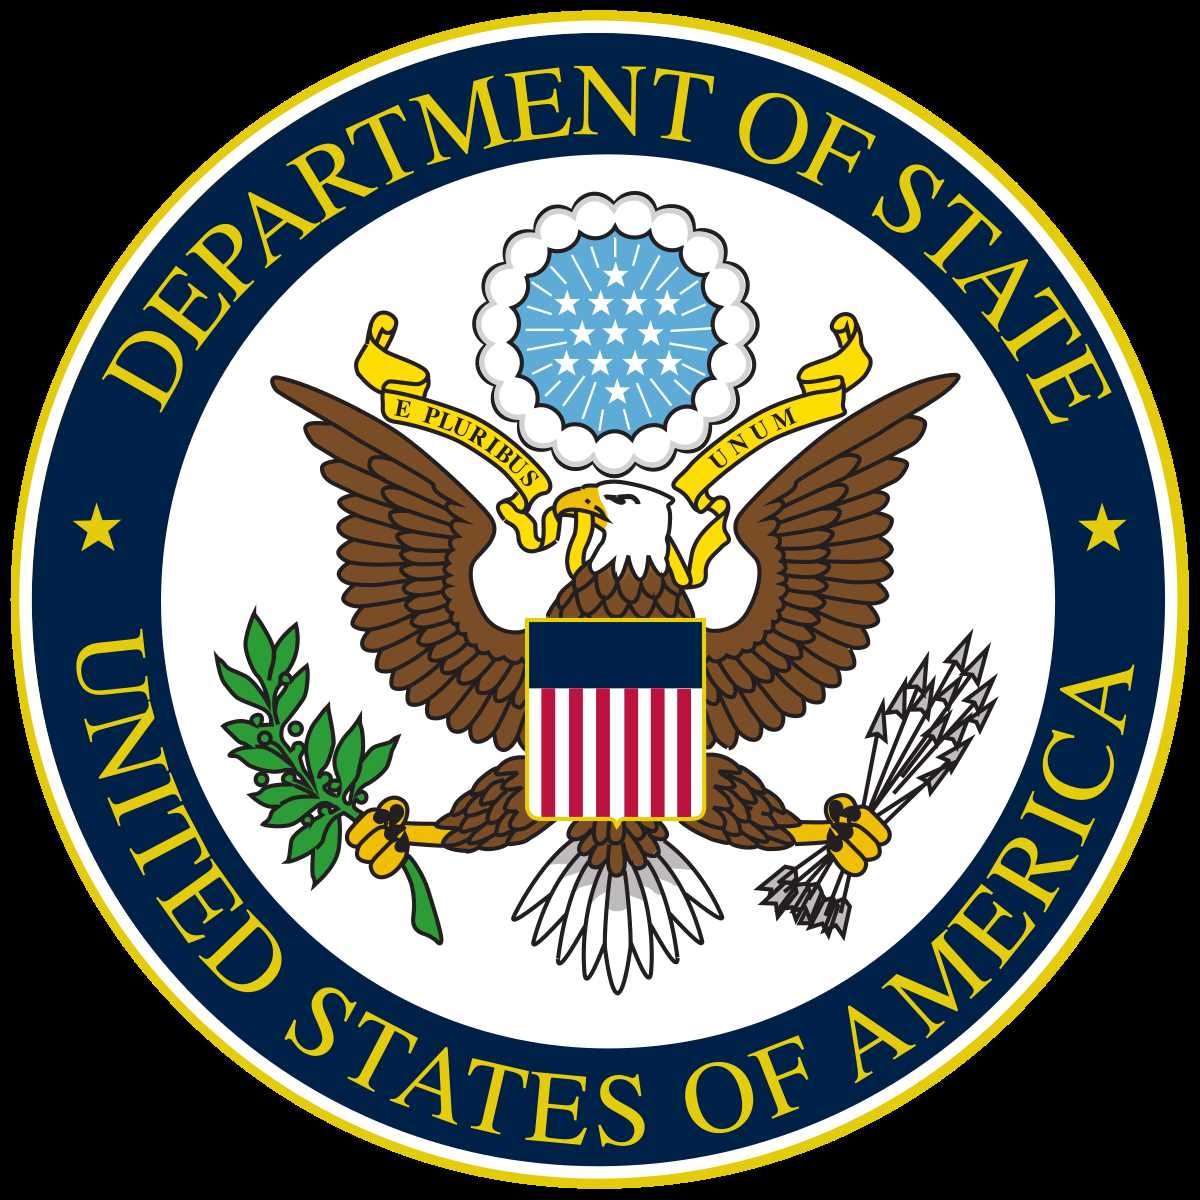 Widespread rights violations in Kashmir: US State Deptt report